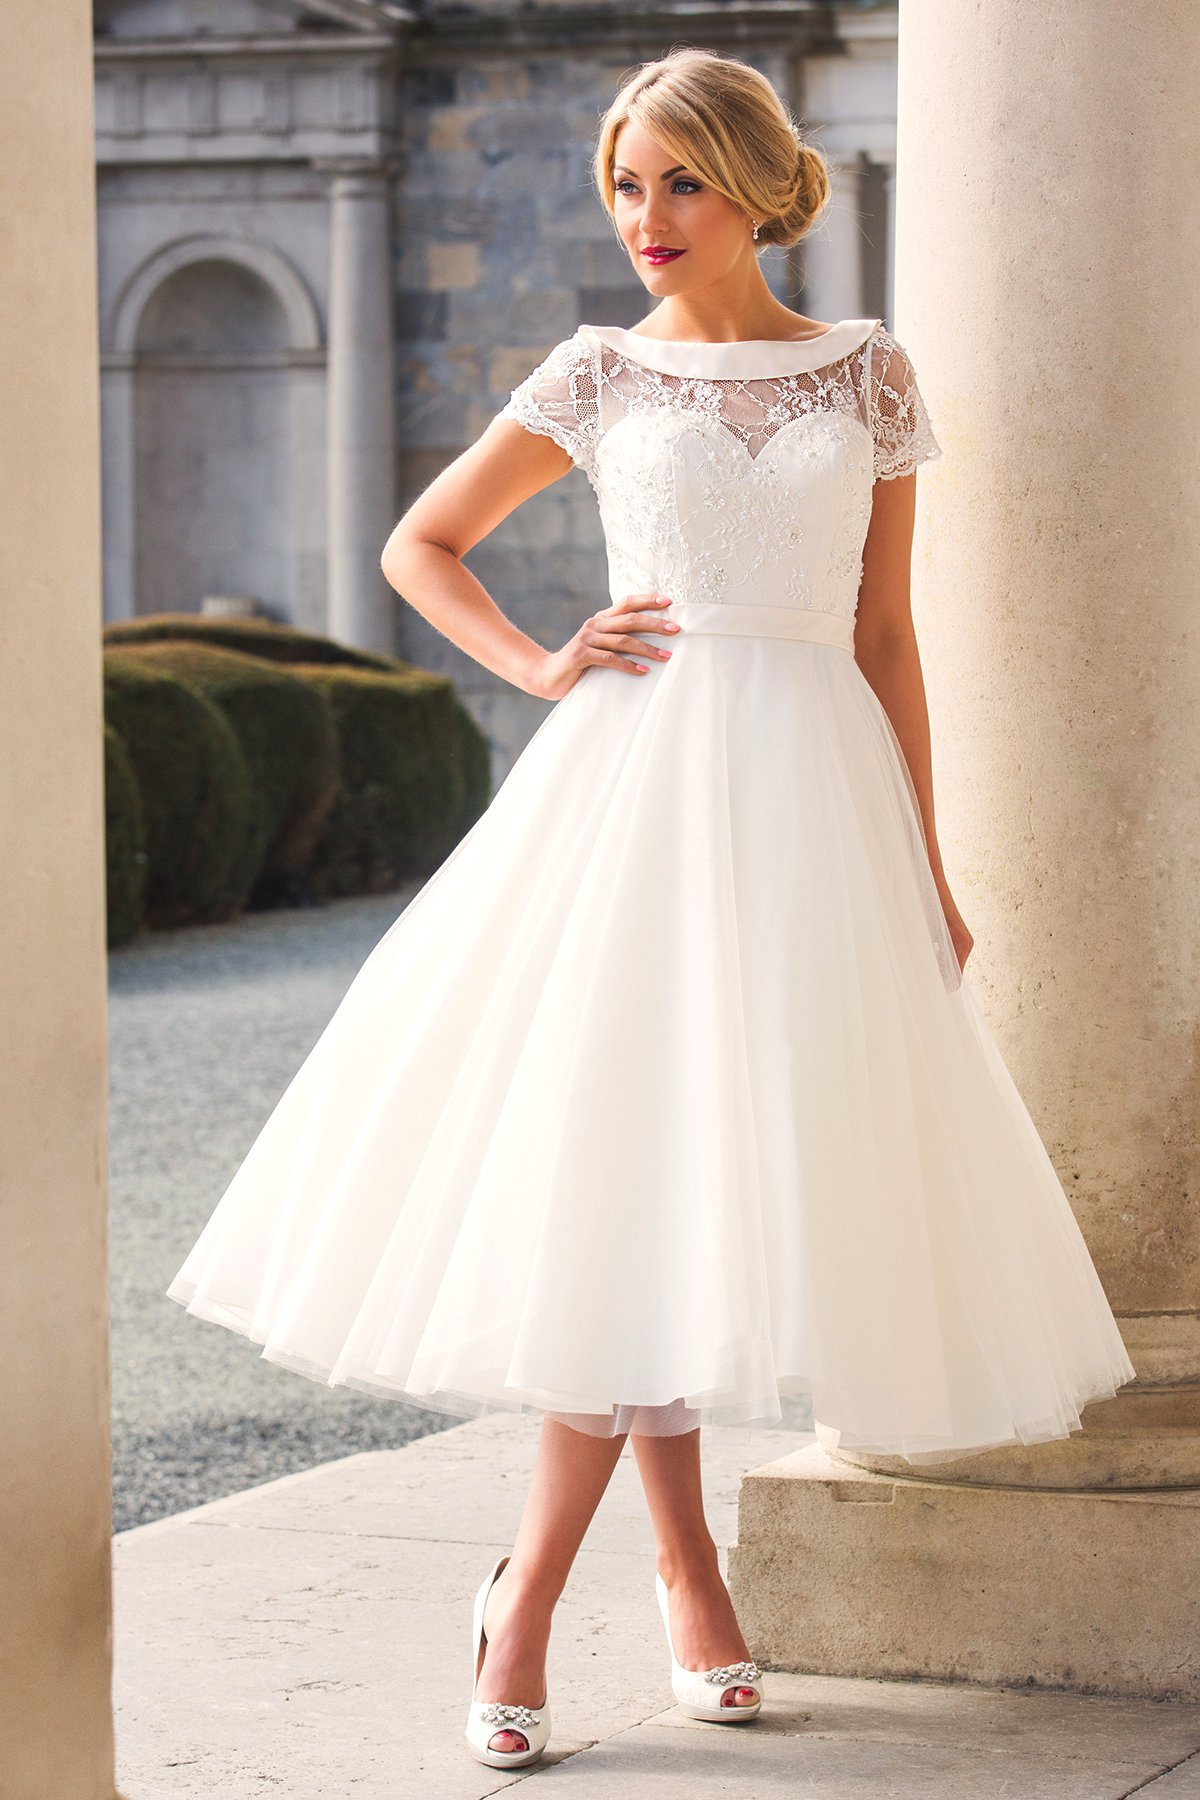 Stunning tea length wedding dresses from special day for Shoes for tea length wedding dress